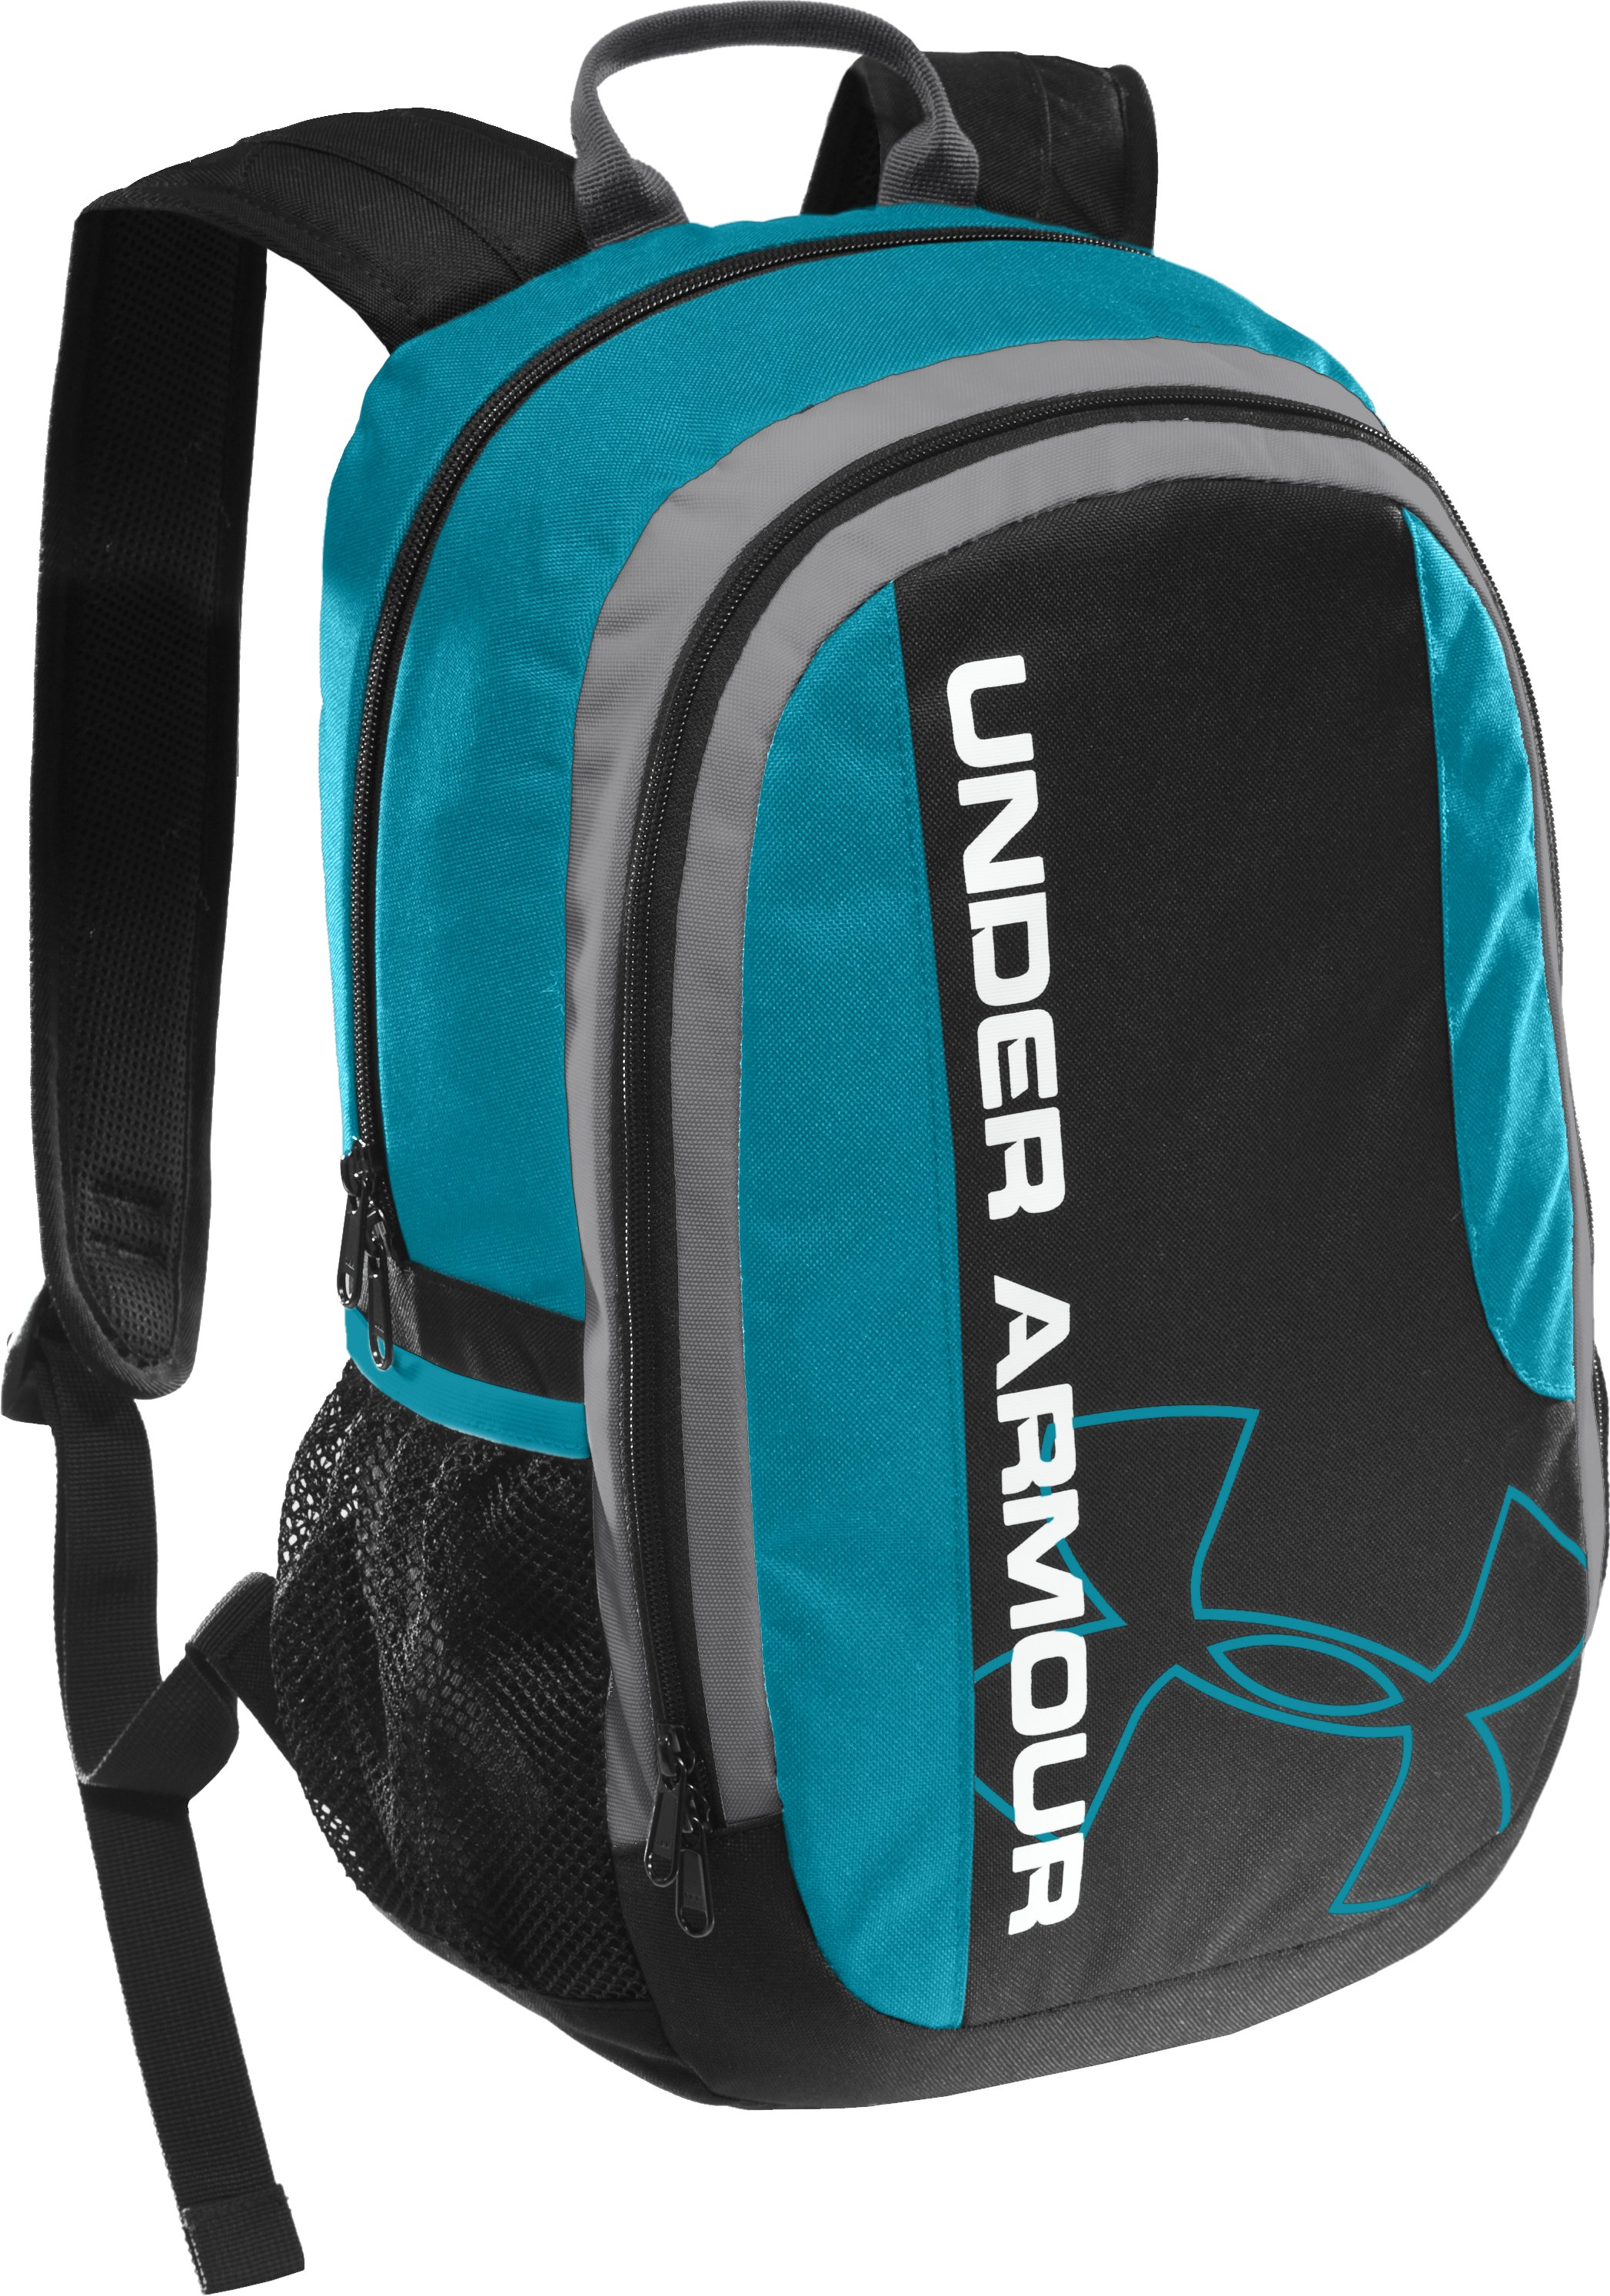 Dauntless Backpack, Black , zoomed image